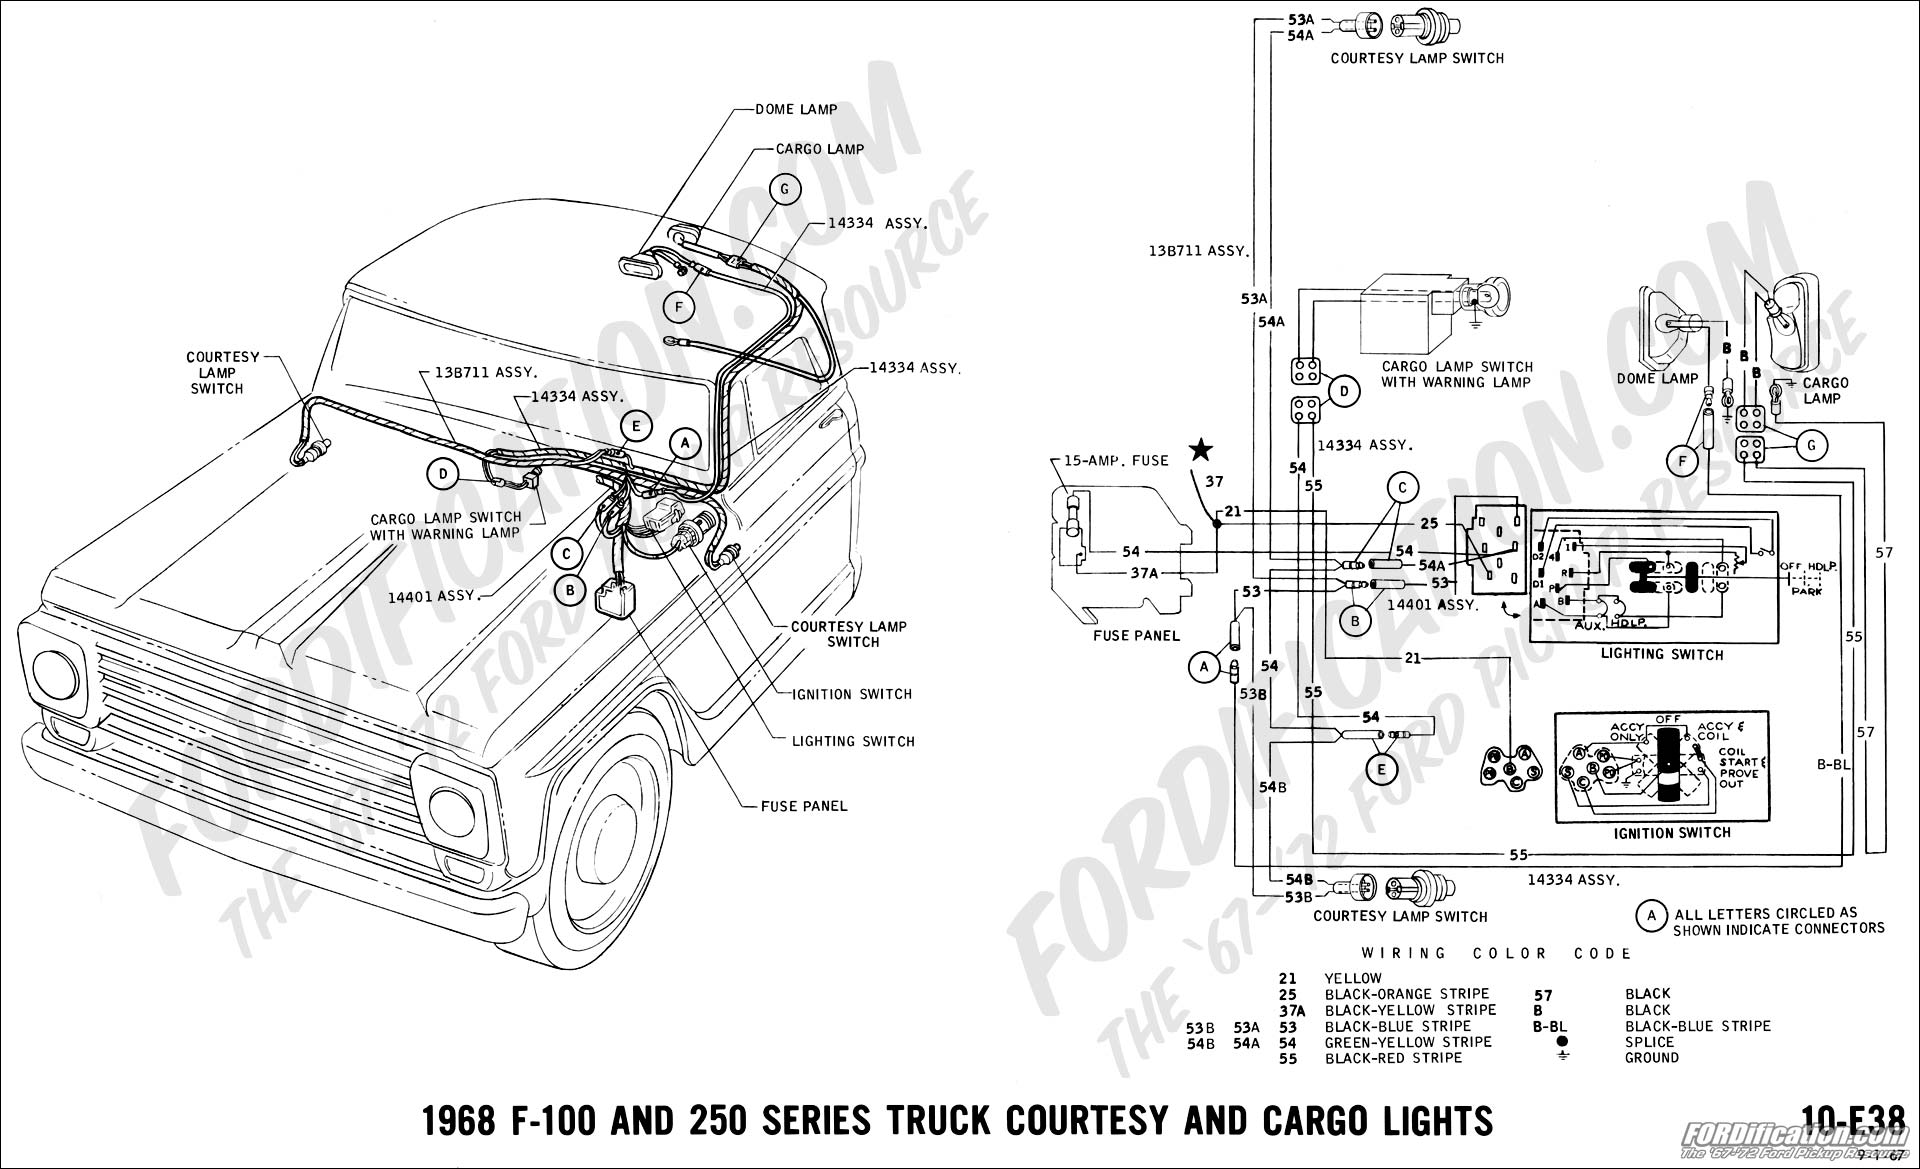 ford f250 camper wiring wiring diagrams rh gregorywein co 1979 Ford F-150 Wiring  Harness 1979 Ford F-150 Wiring Harness